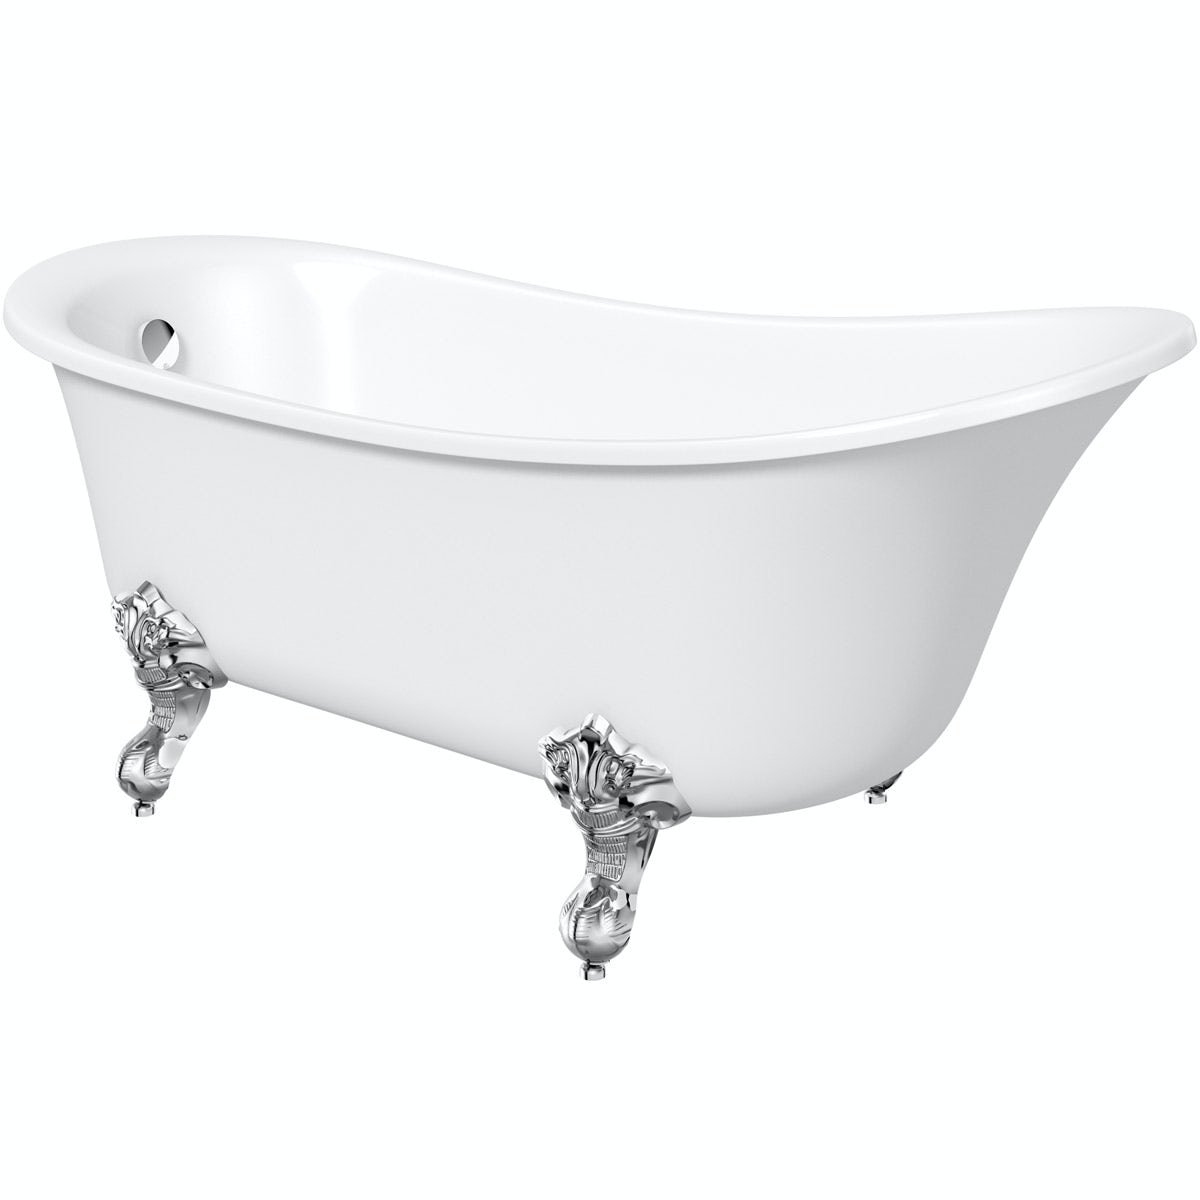 Camberley freestanding slipper bath with ball feet